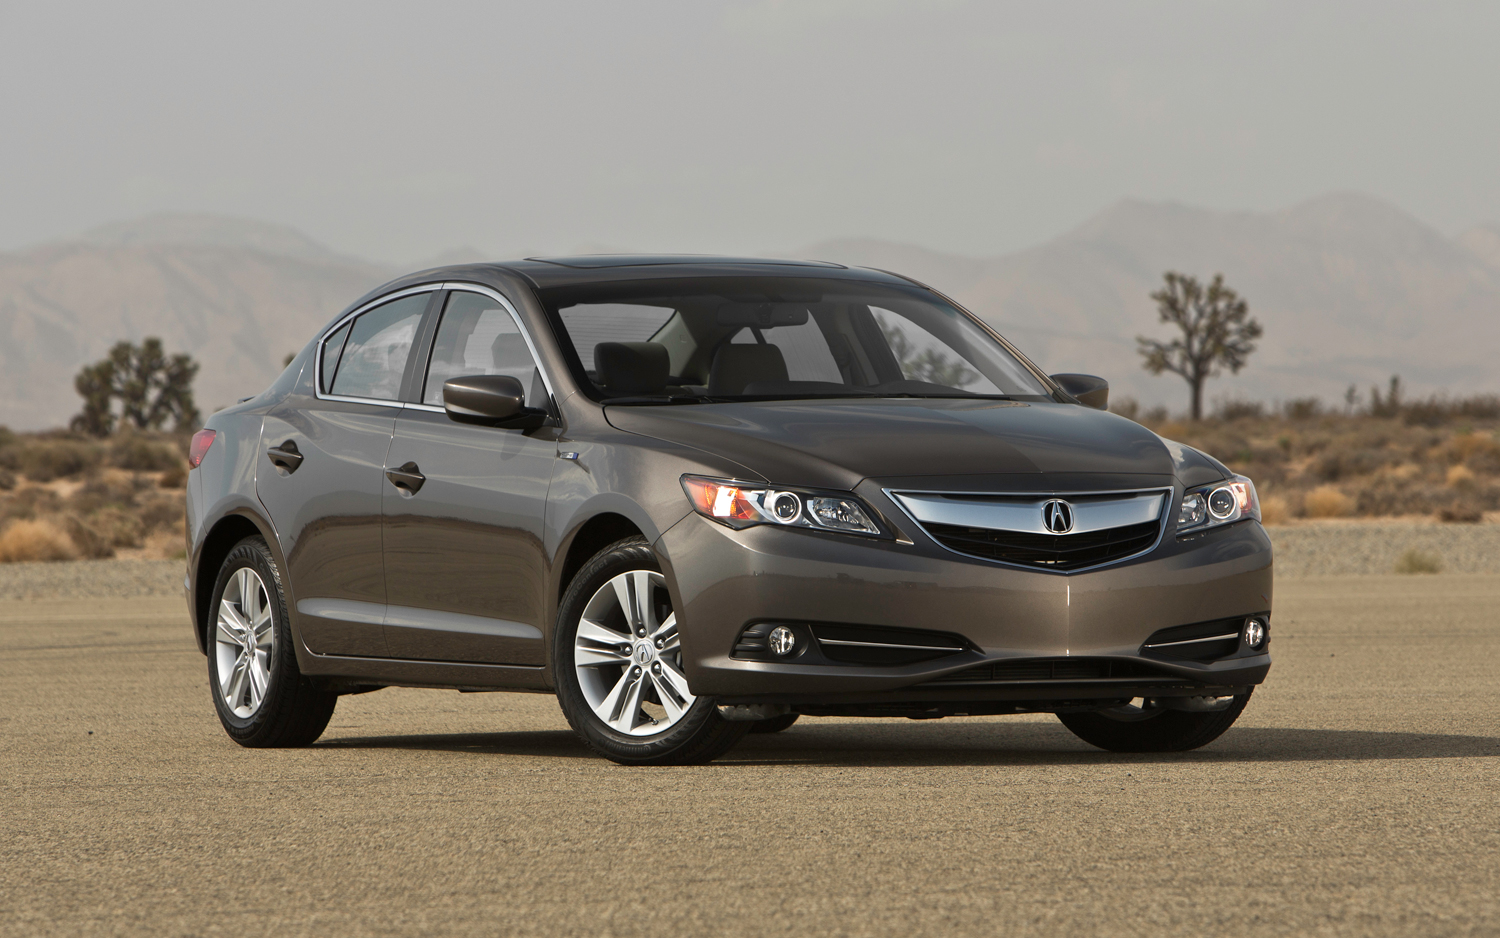 2014 acura ilx information and photos momentcar. Black Bedroom Furniture Sets. Home Design Ideas